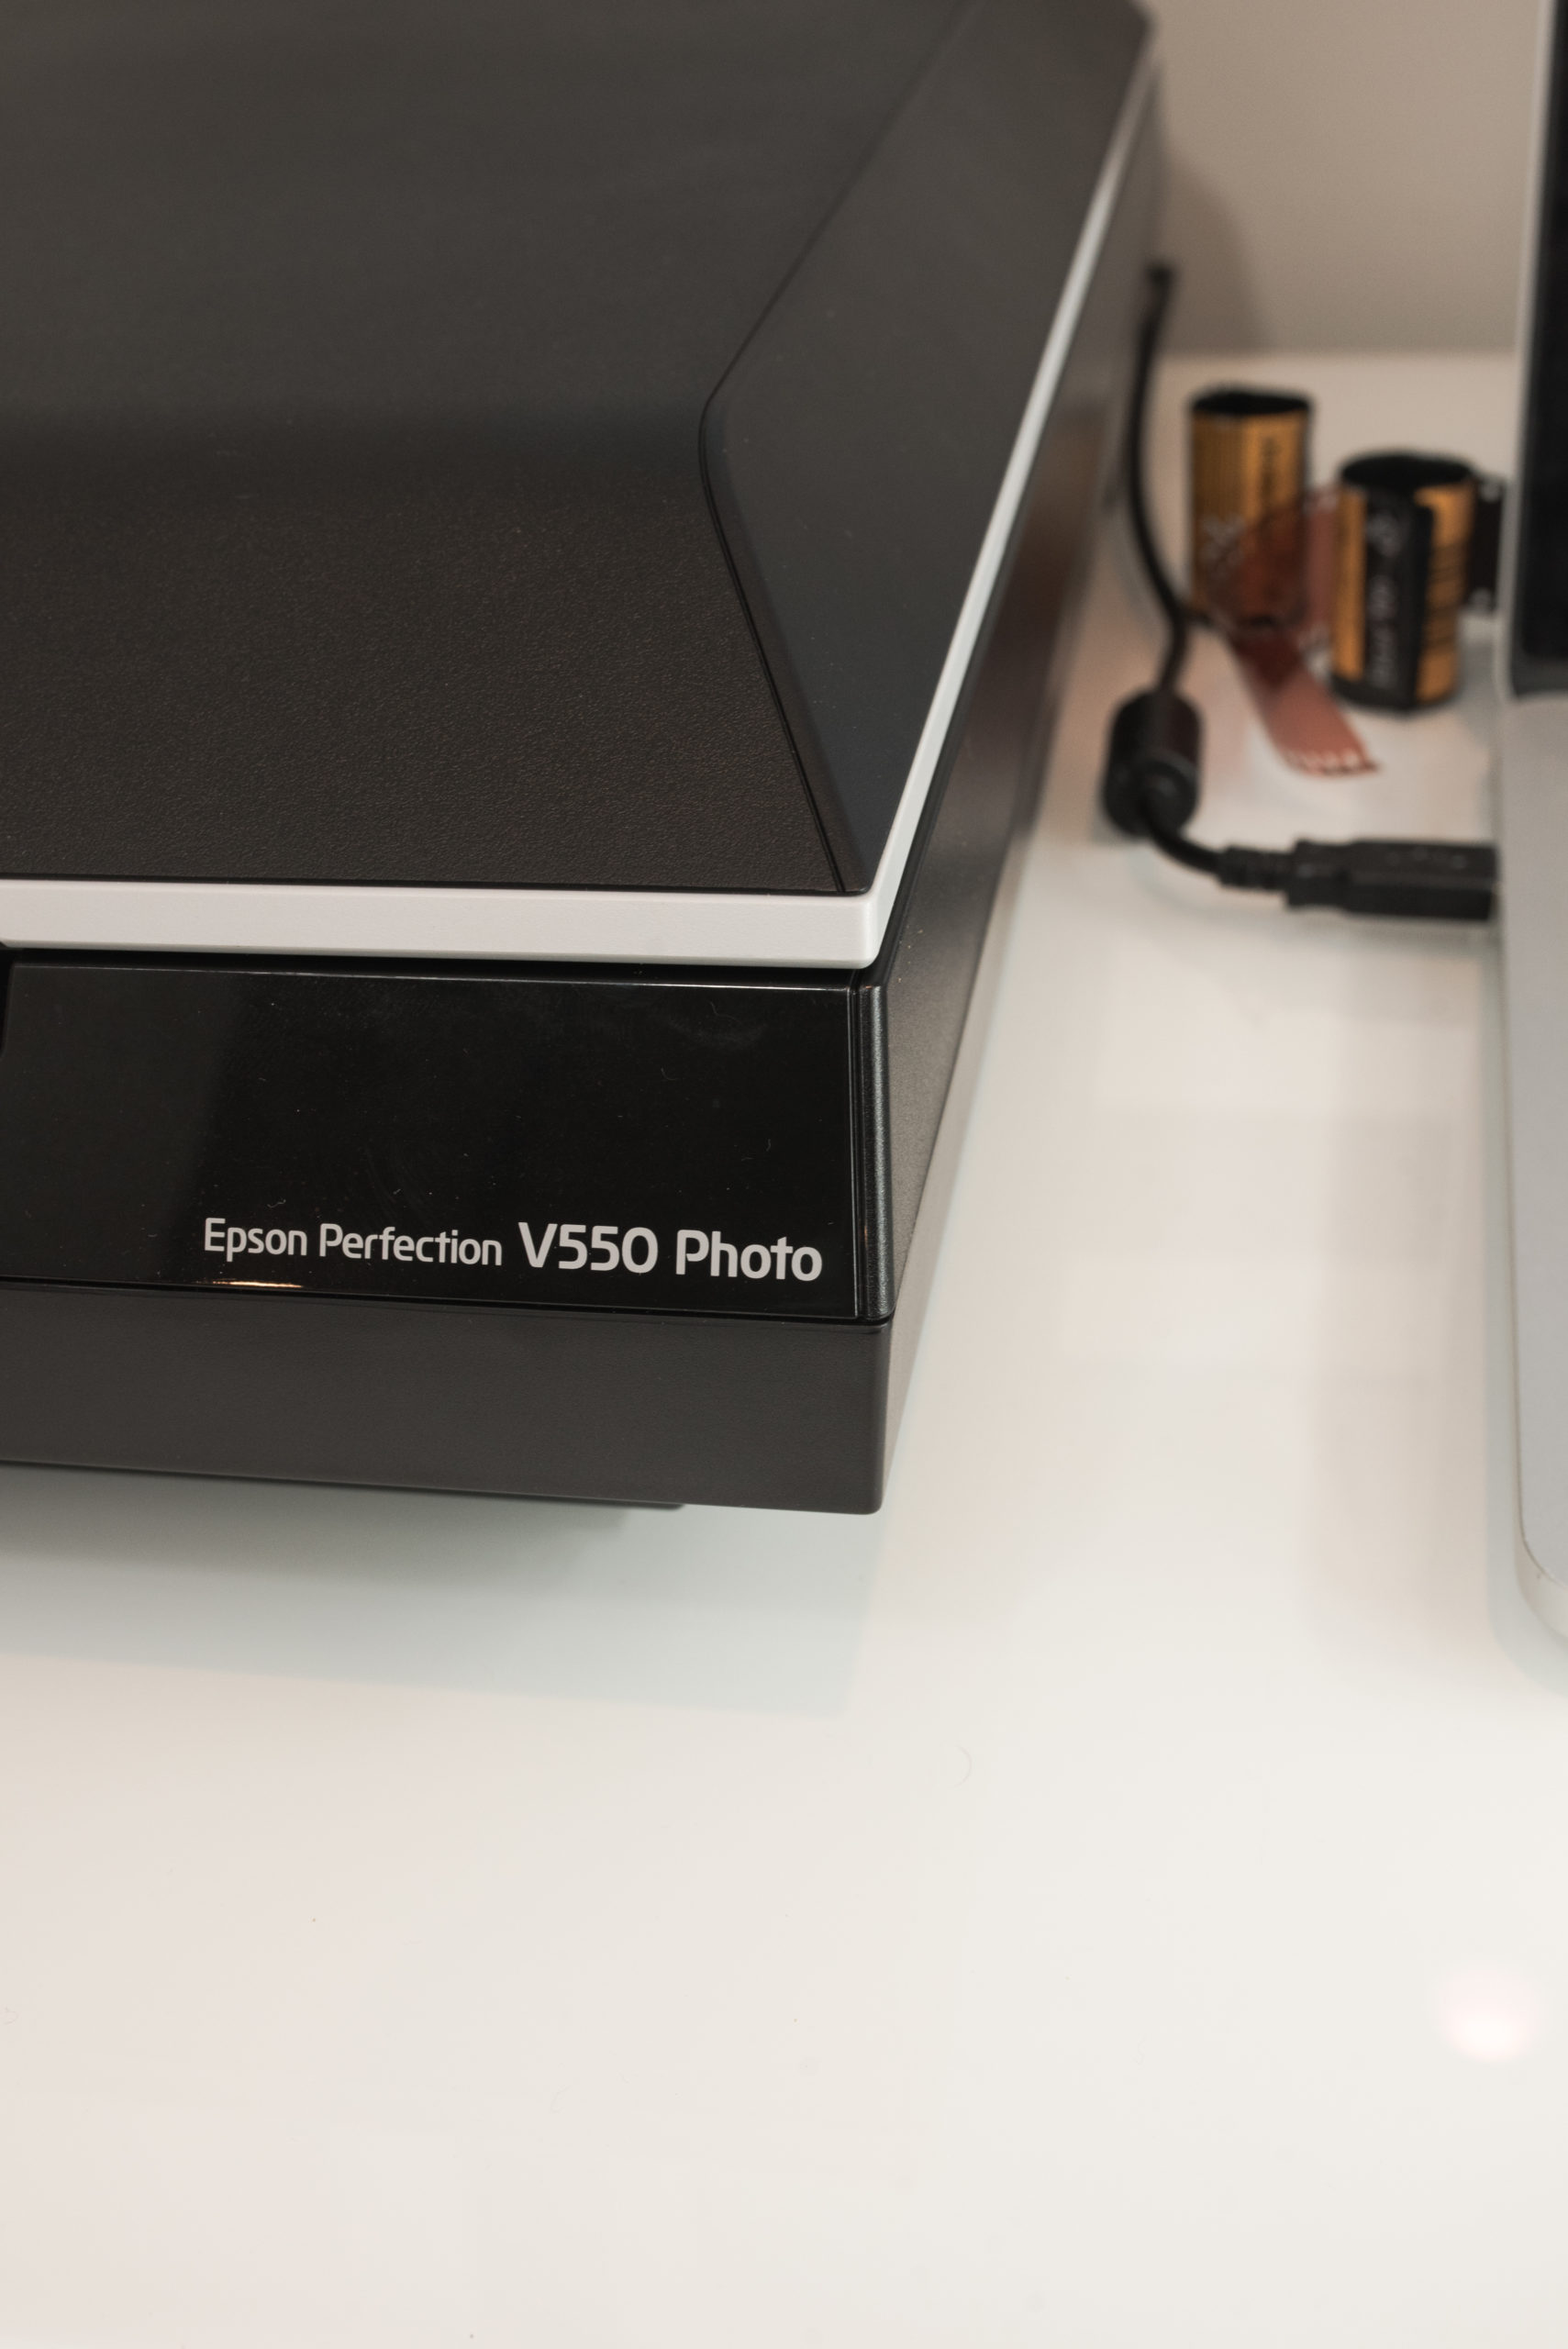 1 bScanning Analog Film with the Epson Perfection v550 Photo Scanner - FilterGrade